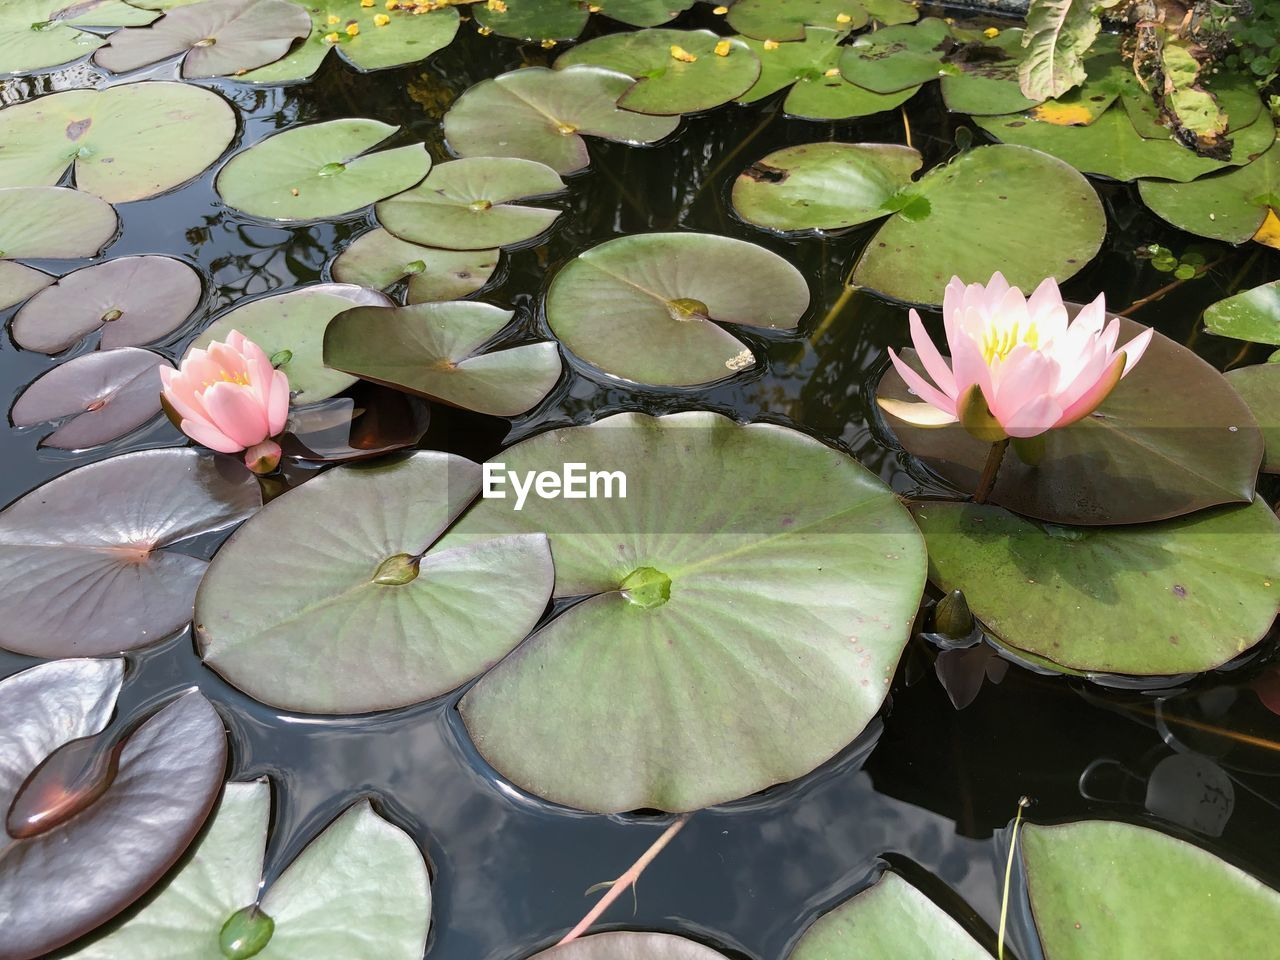 flower, plant, flowering plant, leaf, plant part, beauty in nature, water lily, growth, floating, nature, petal, freshness, floating on water, vulnerability, water, inflorescence, flower head, fragility, close-up, lake, no people, outdoors, lotus water lily, leaves